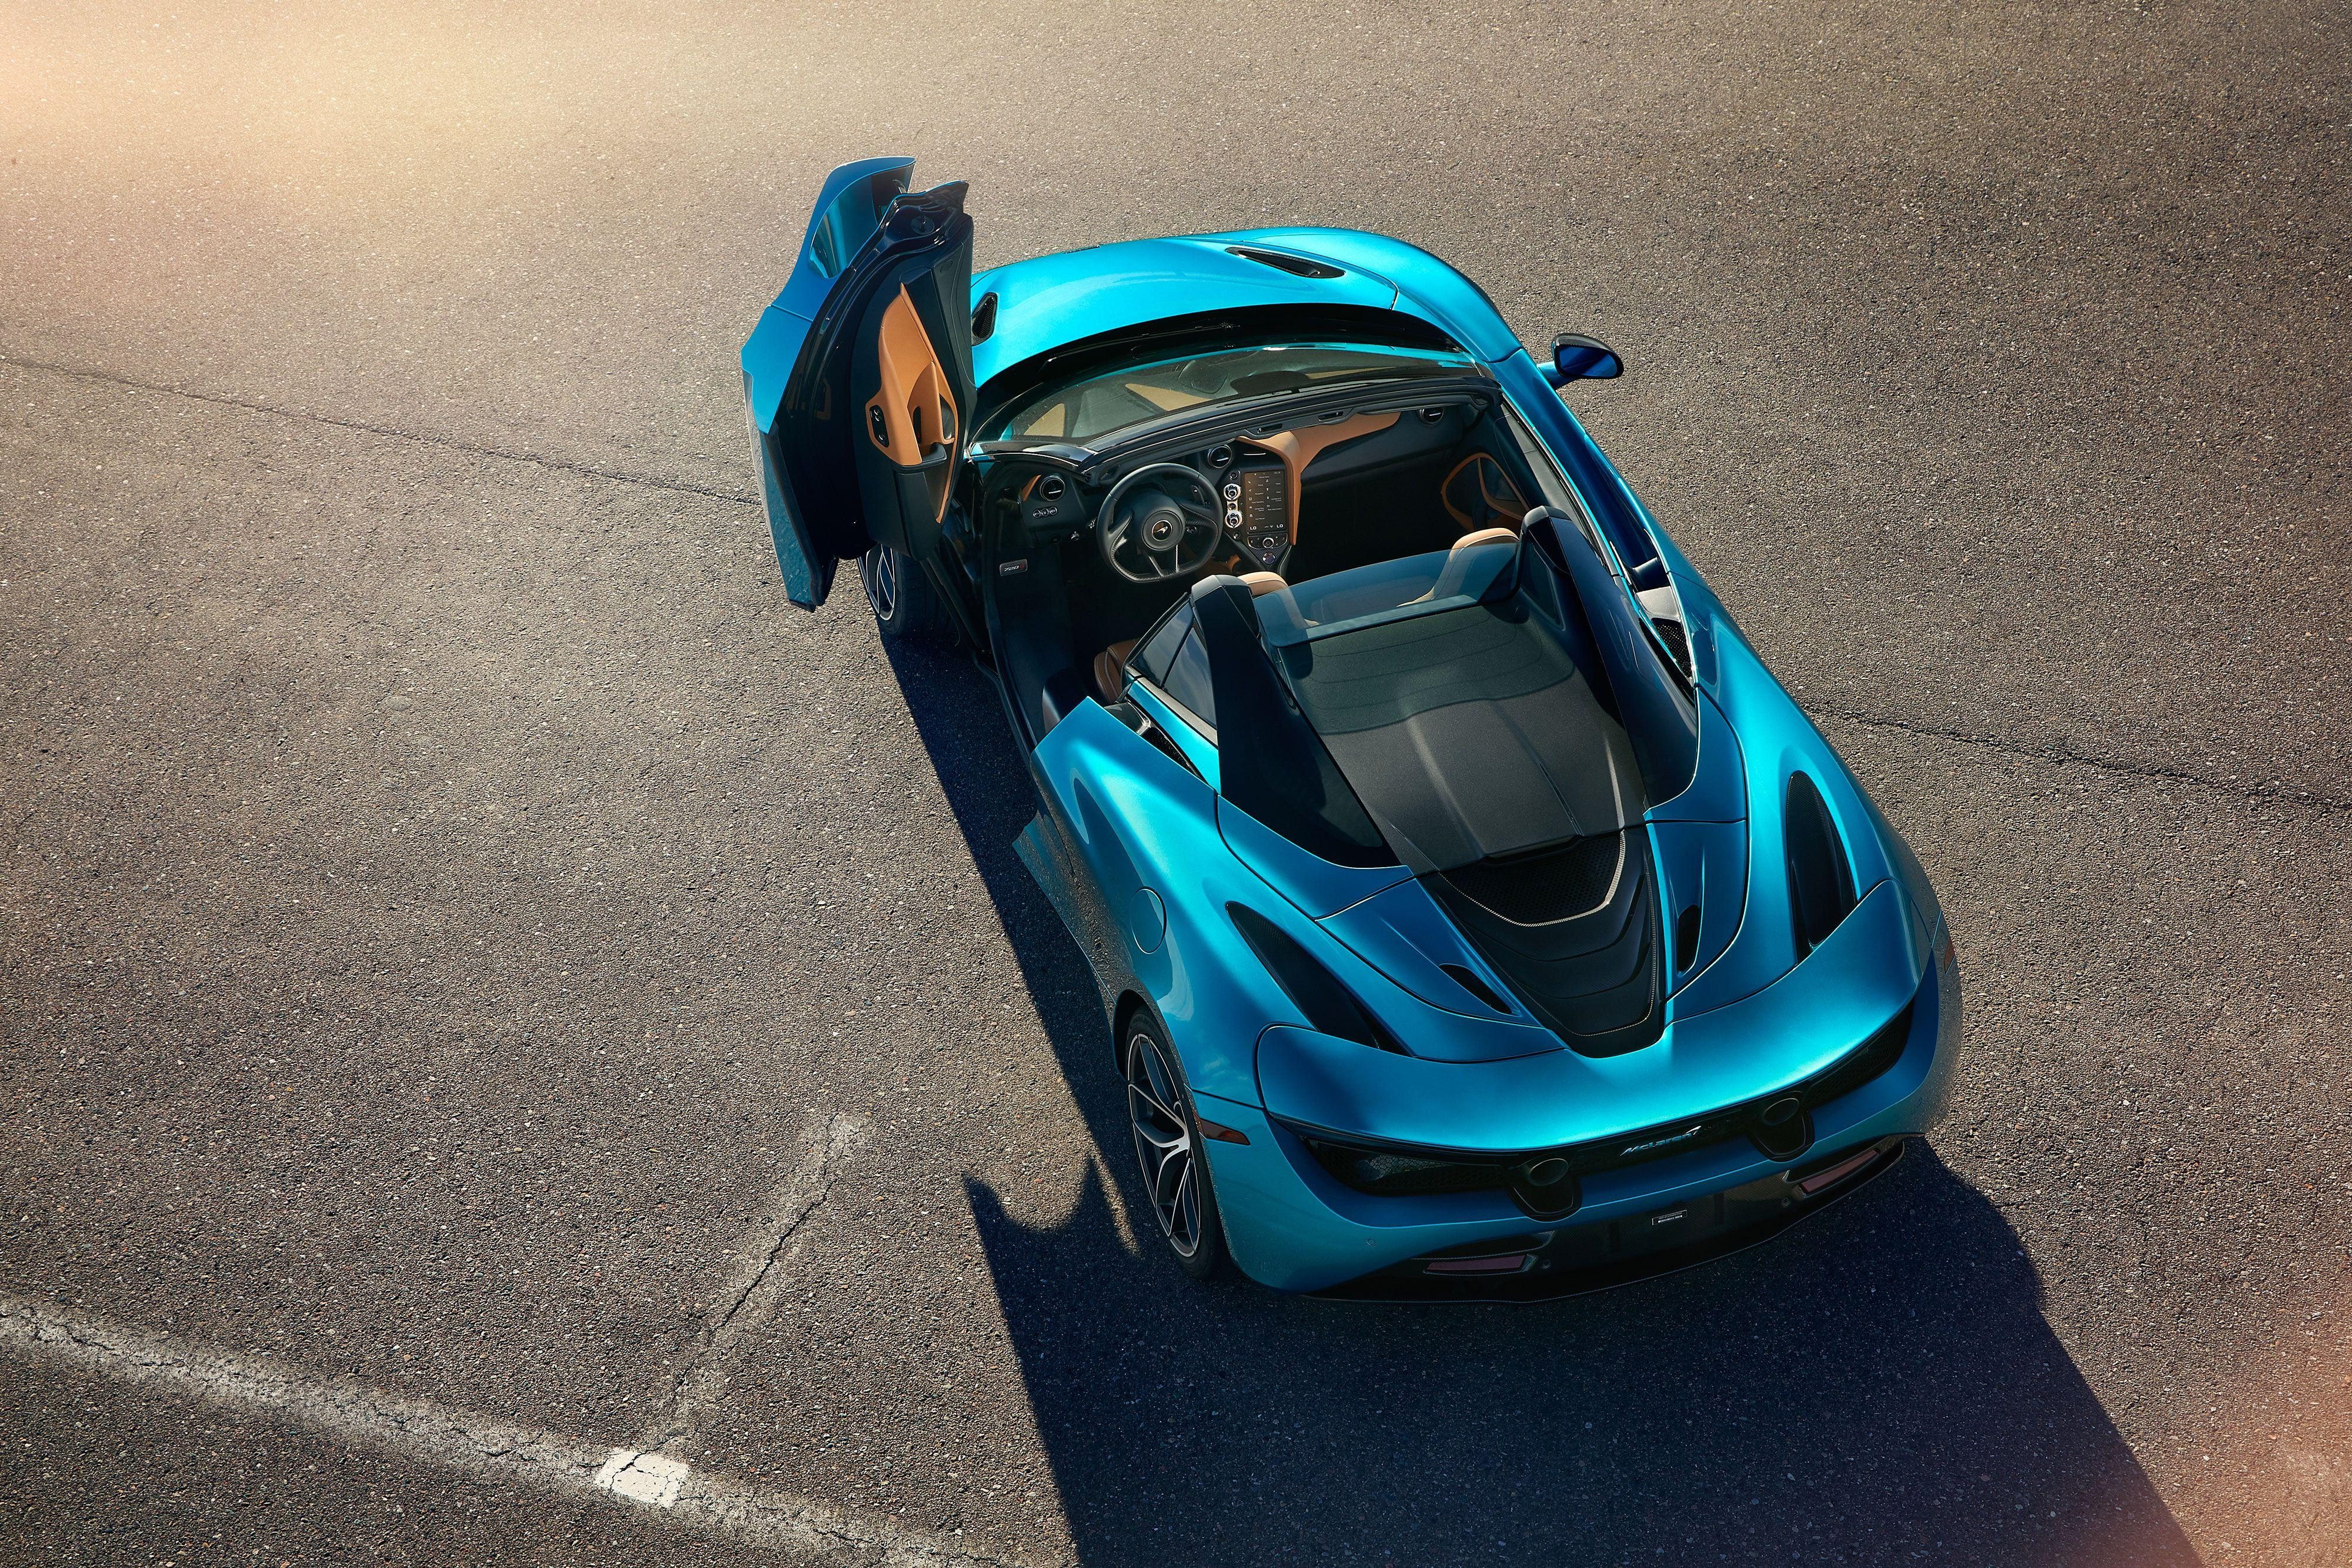 """<p>Yes, the new-for-'19 McLaren 720S Spider is simply a droptop version of the familiar <a href=""""https://www.caranddriver.com/mclaren/720s"""" rel=""""nofollow noopener"""" target=""""_blank"""" data-ylk=""""slk:720S coupe"""" class=""""link rapid-noclick-resp"""">720S coupe</a>. Its introduction is in no way significant in the grander scheme of things.</p>"""